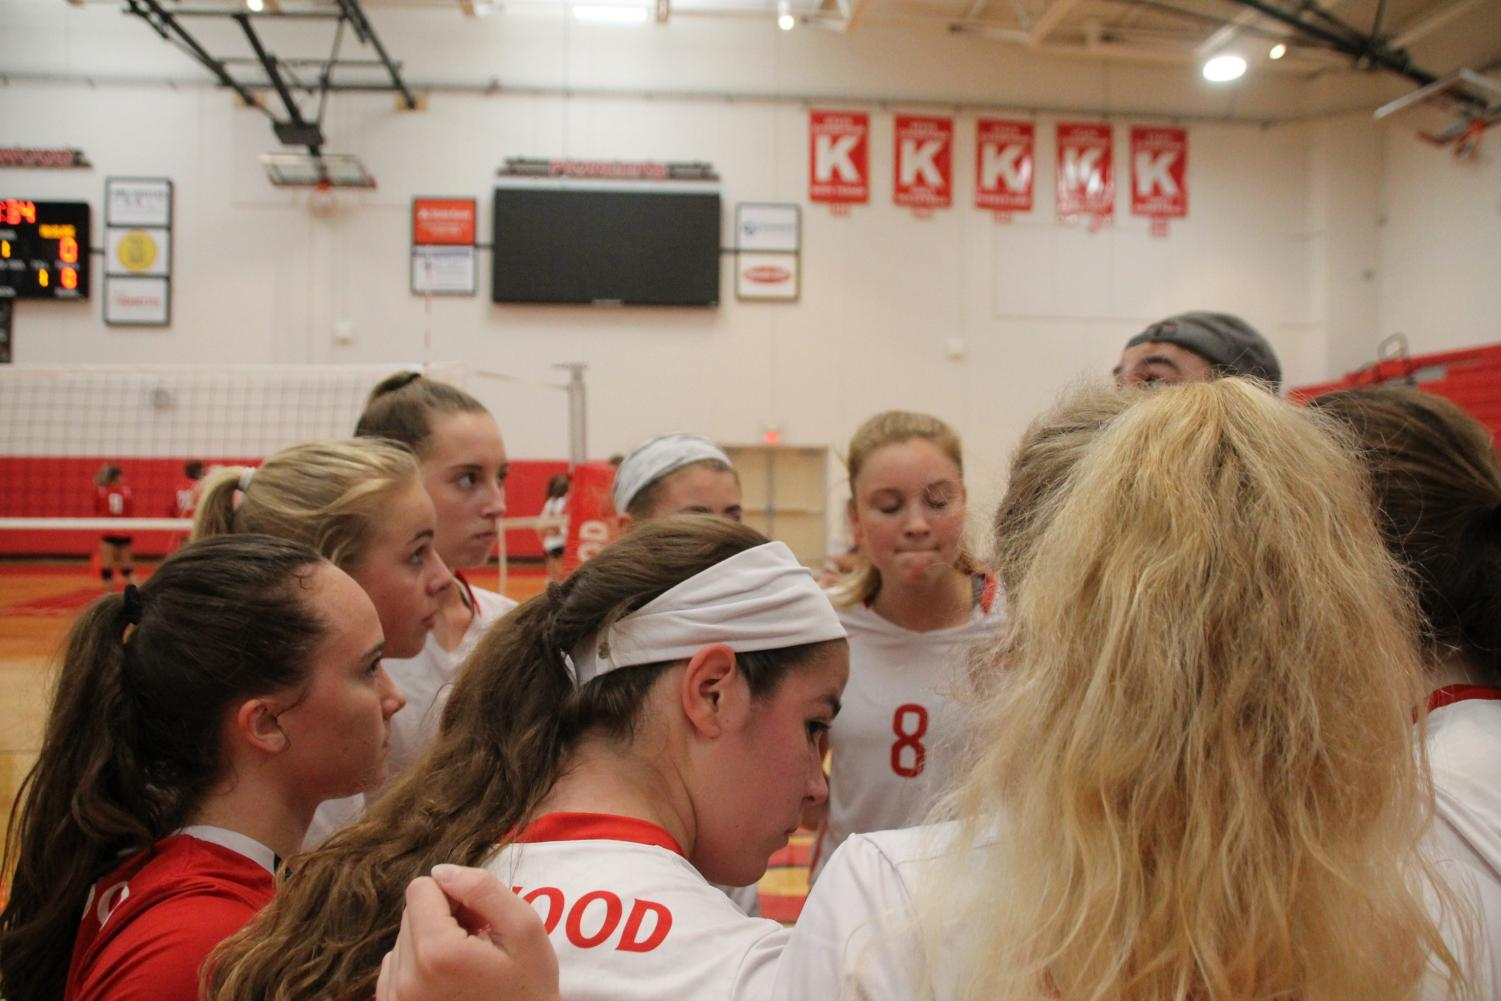 JV+volleyball+team+huddles+together+to+discuss+their+strategy.